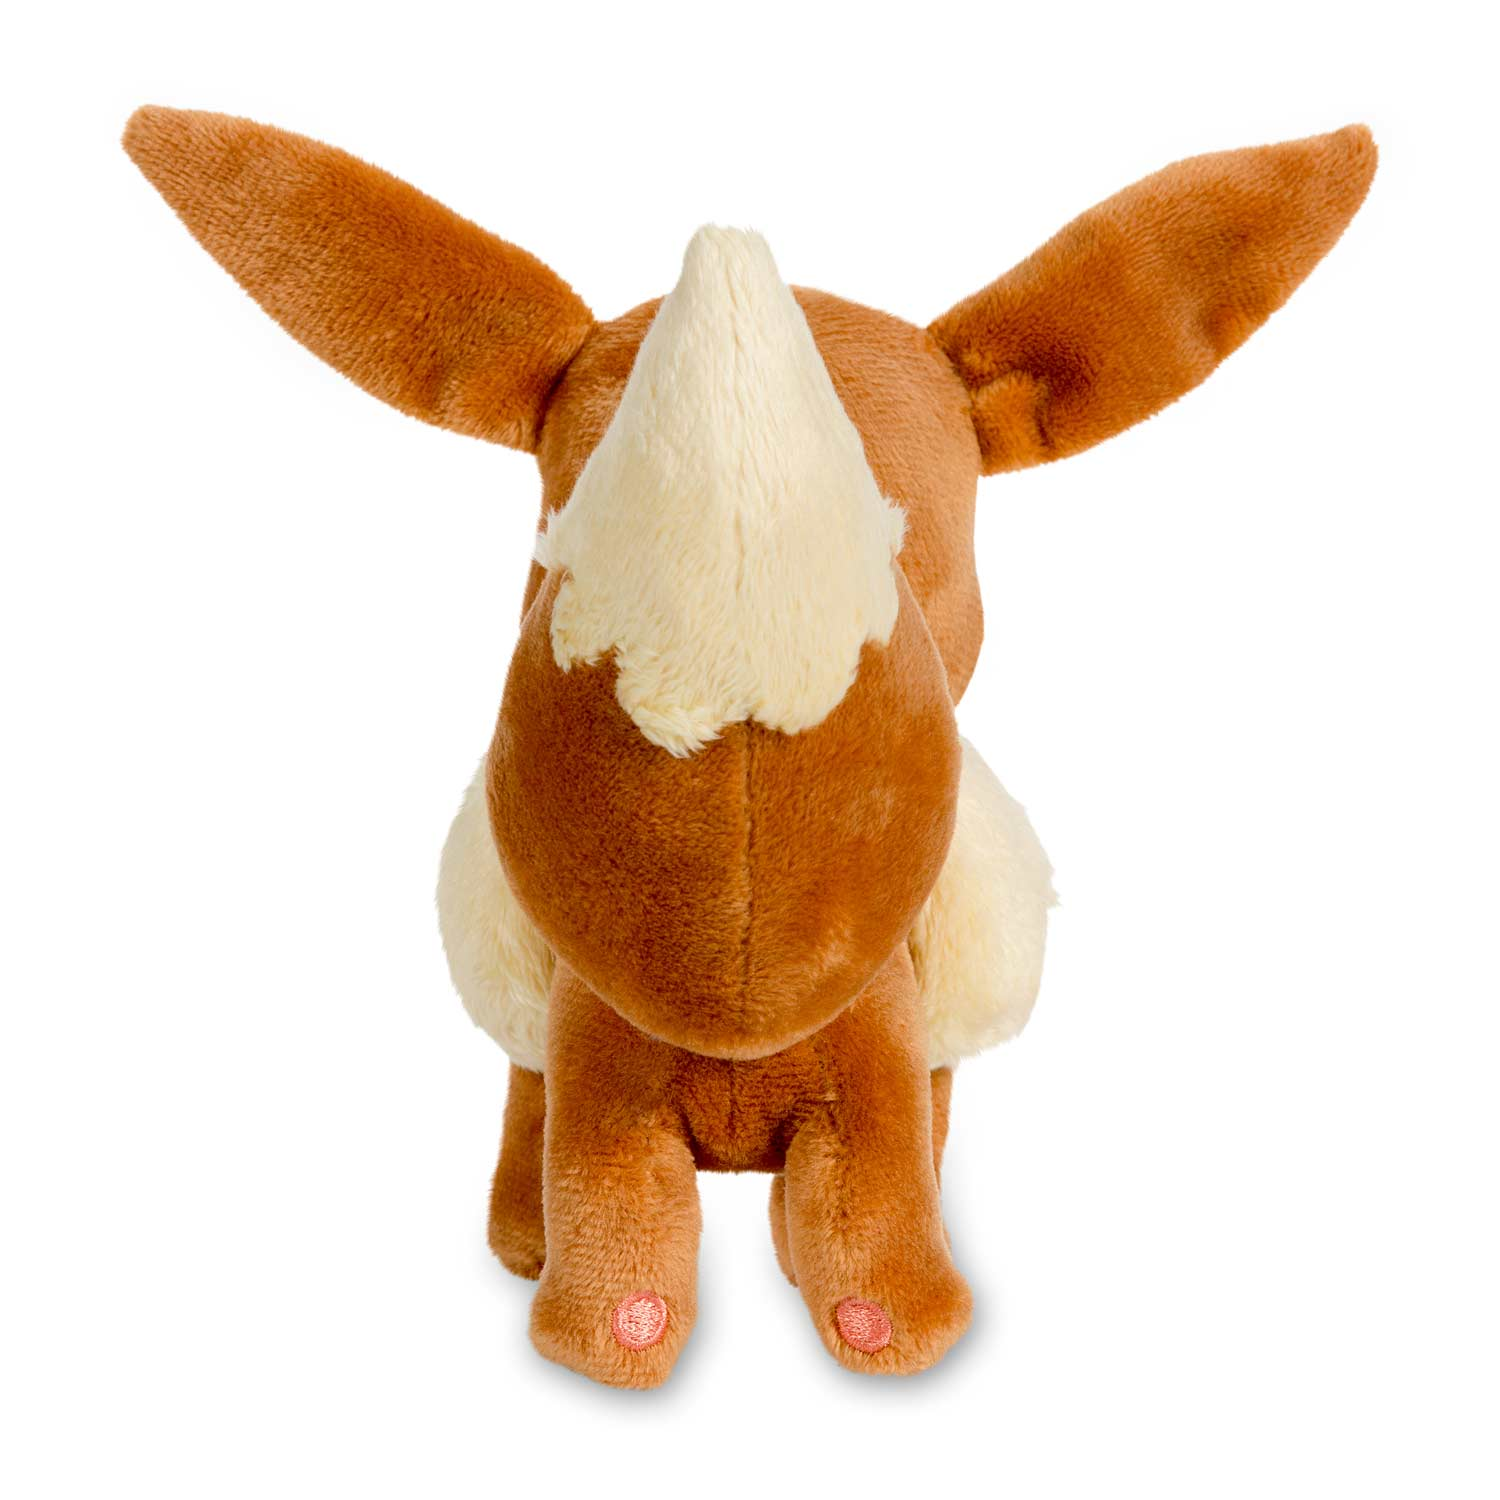 eevee pokémon plush pokémon center original